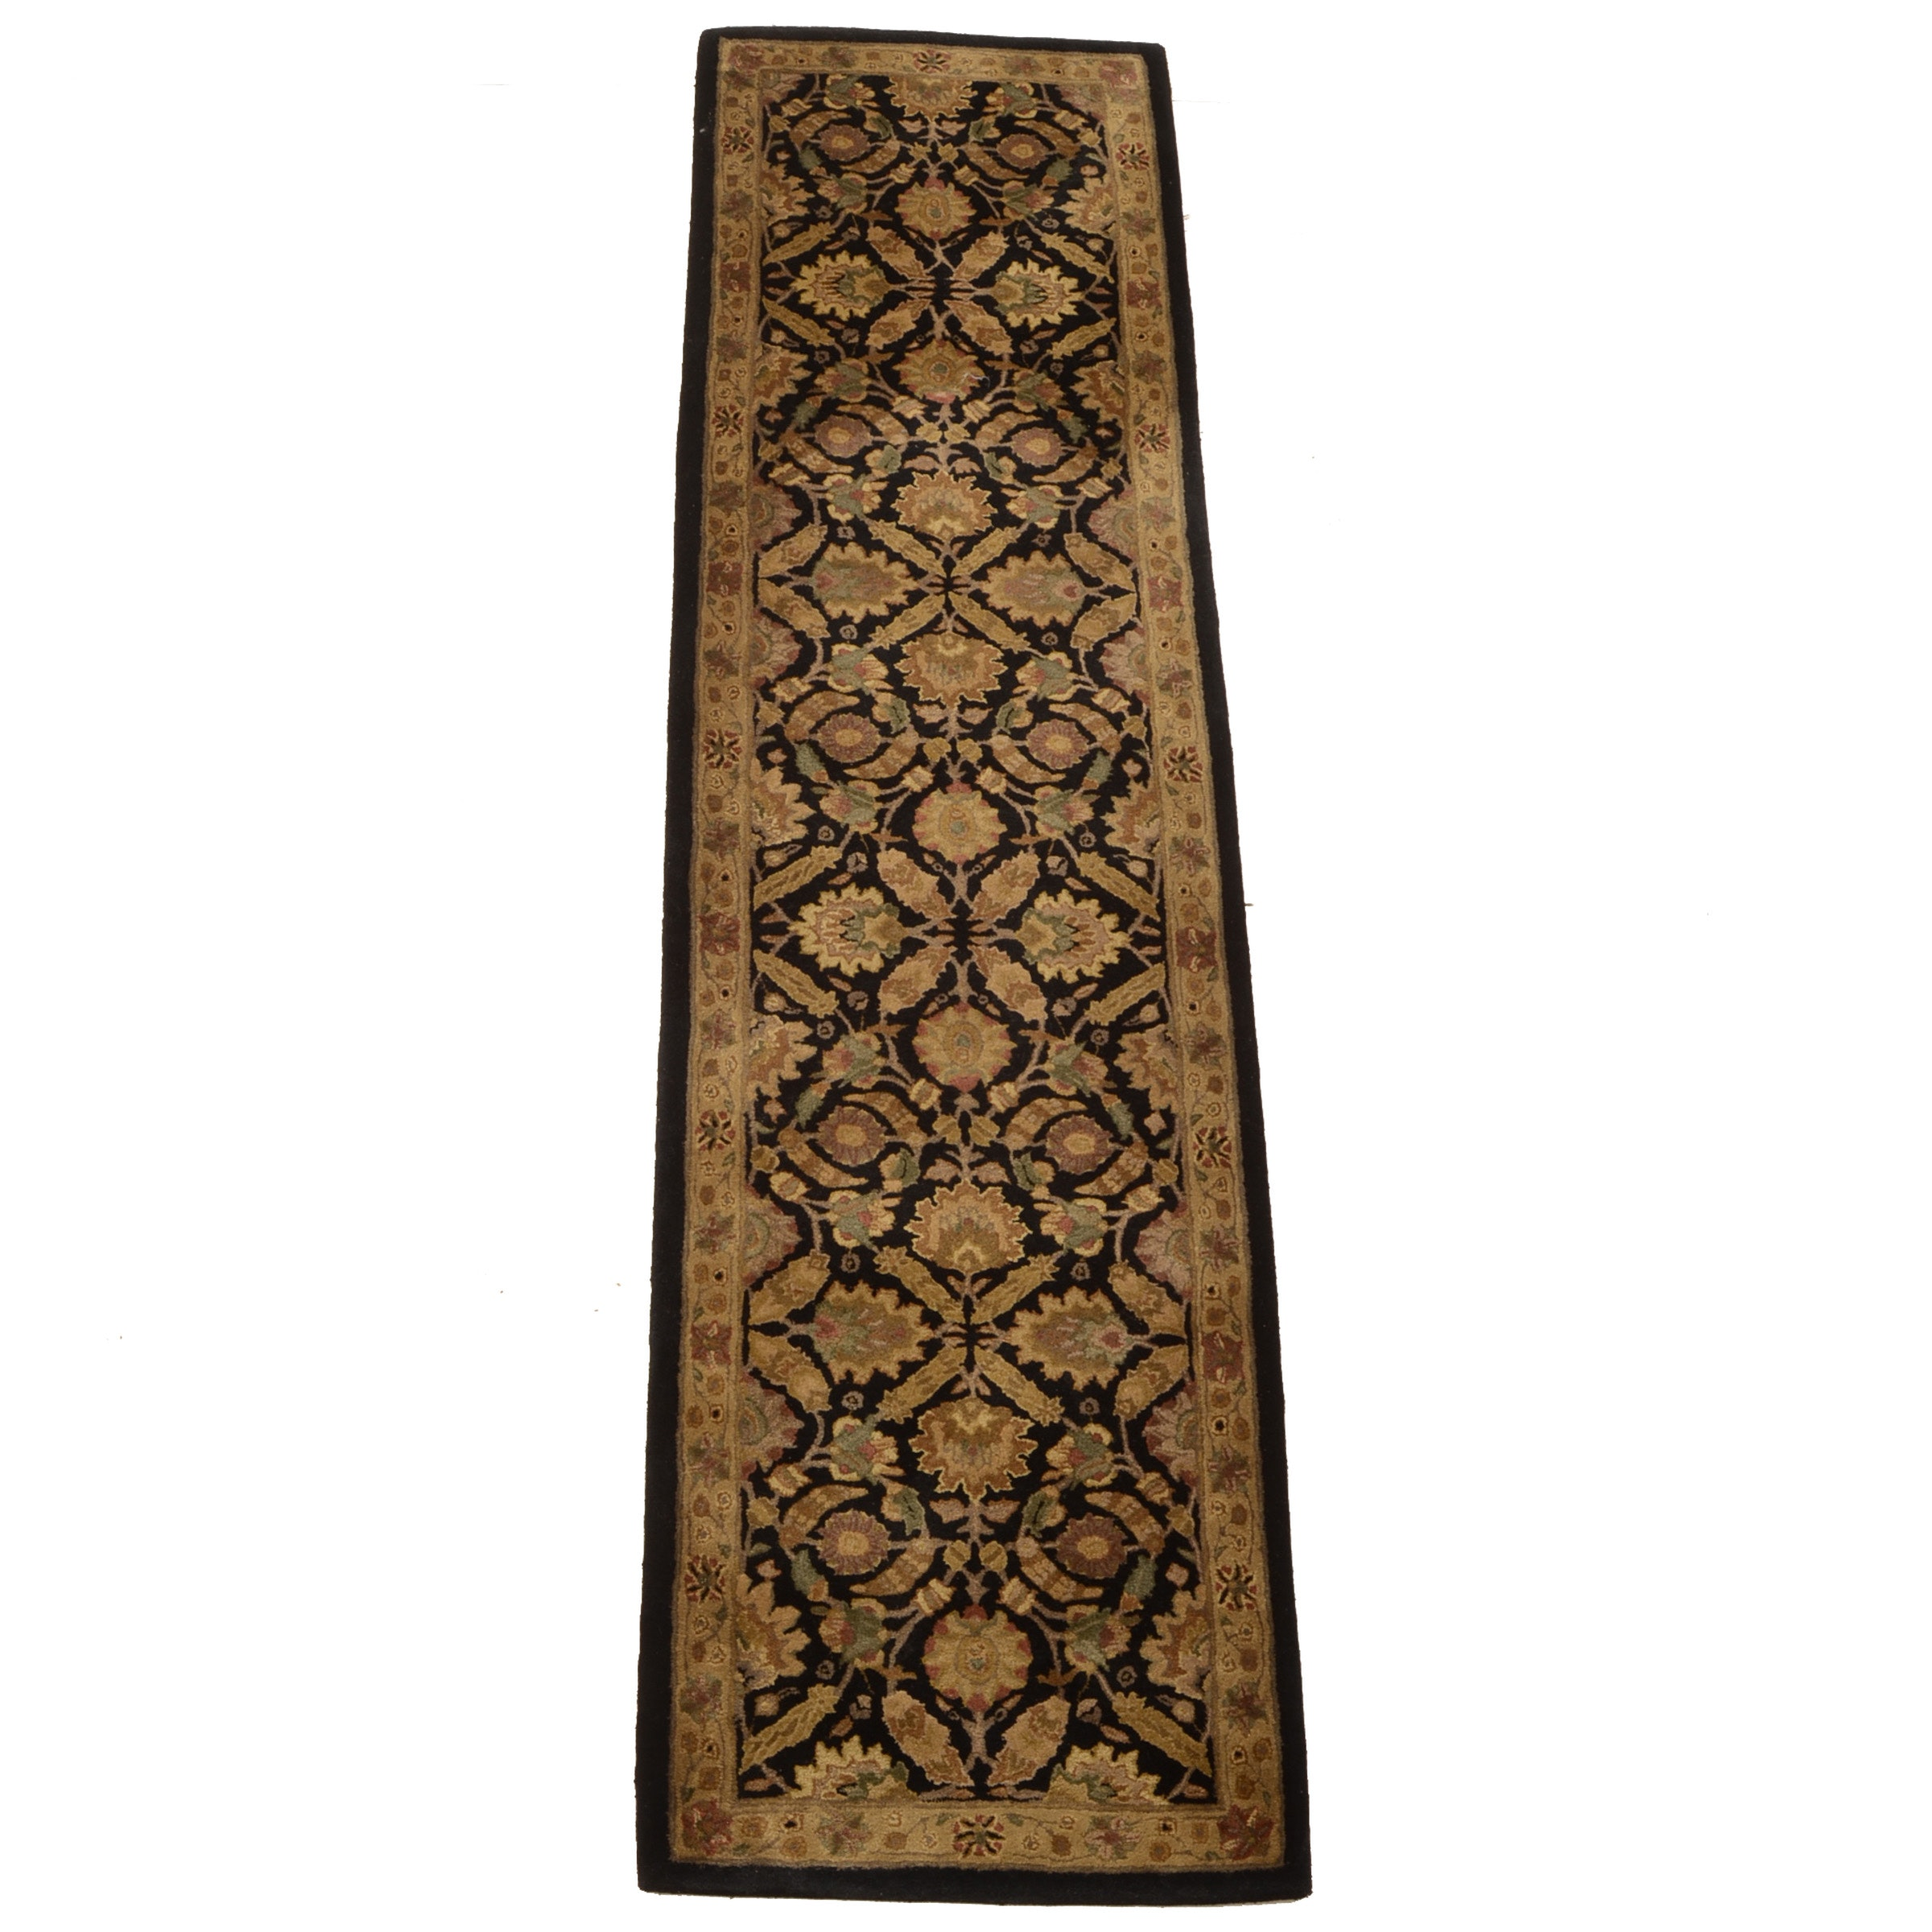 "Tufted Indian ""Polonaise"" Carpet Runner by Capel"